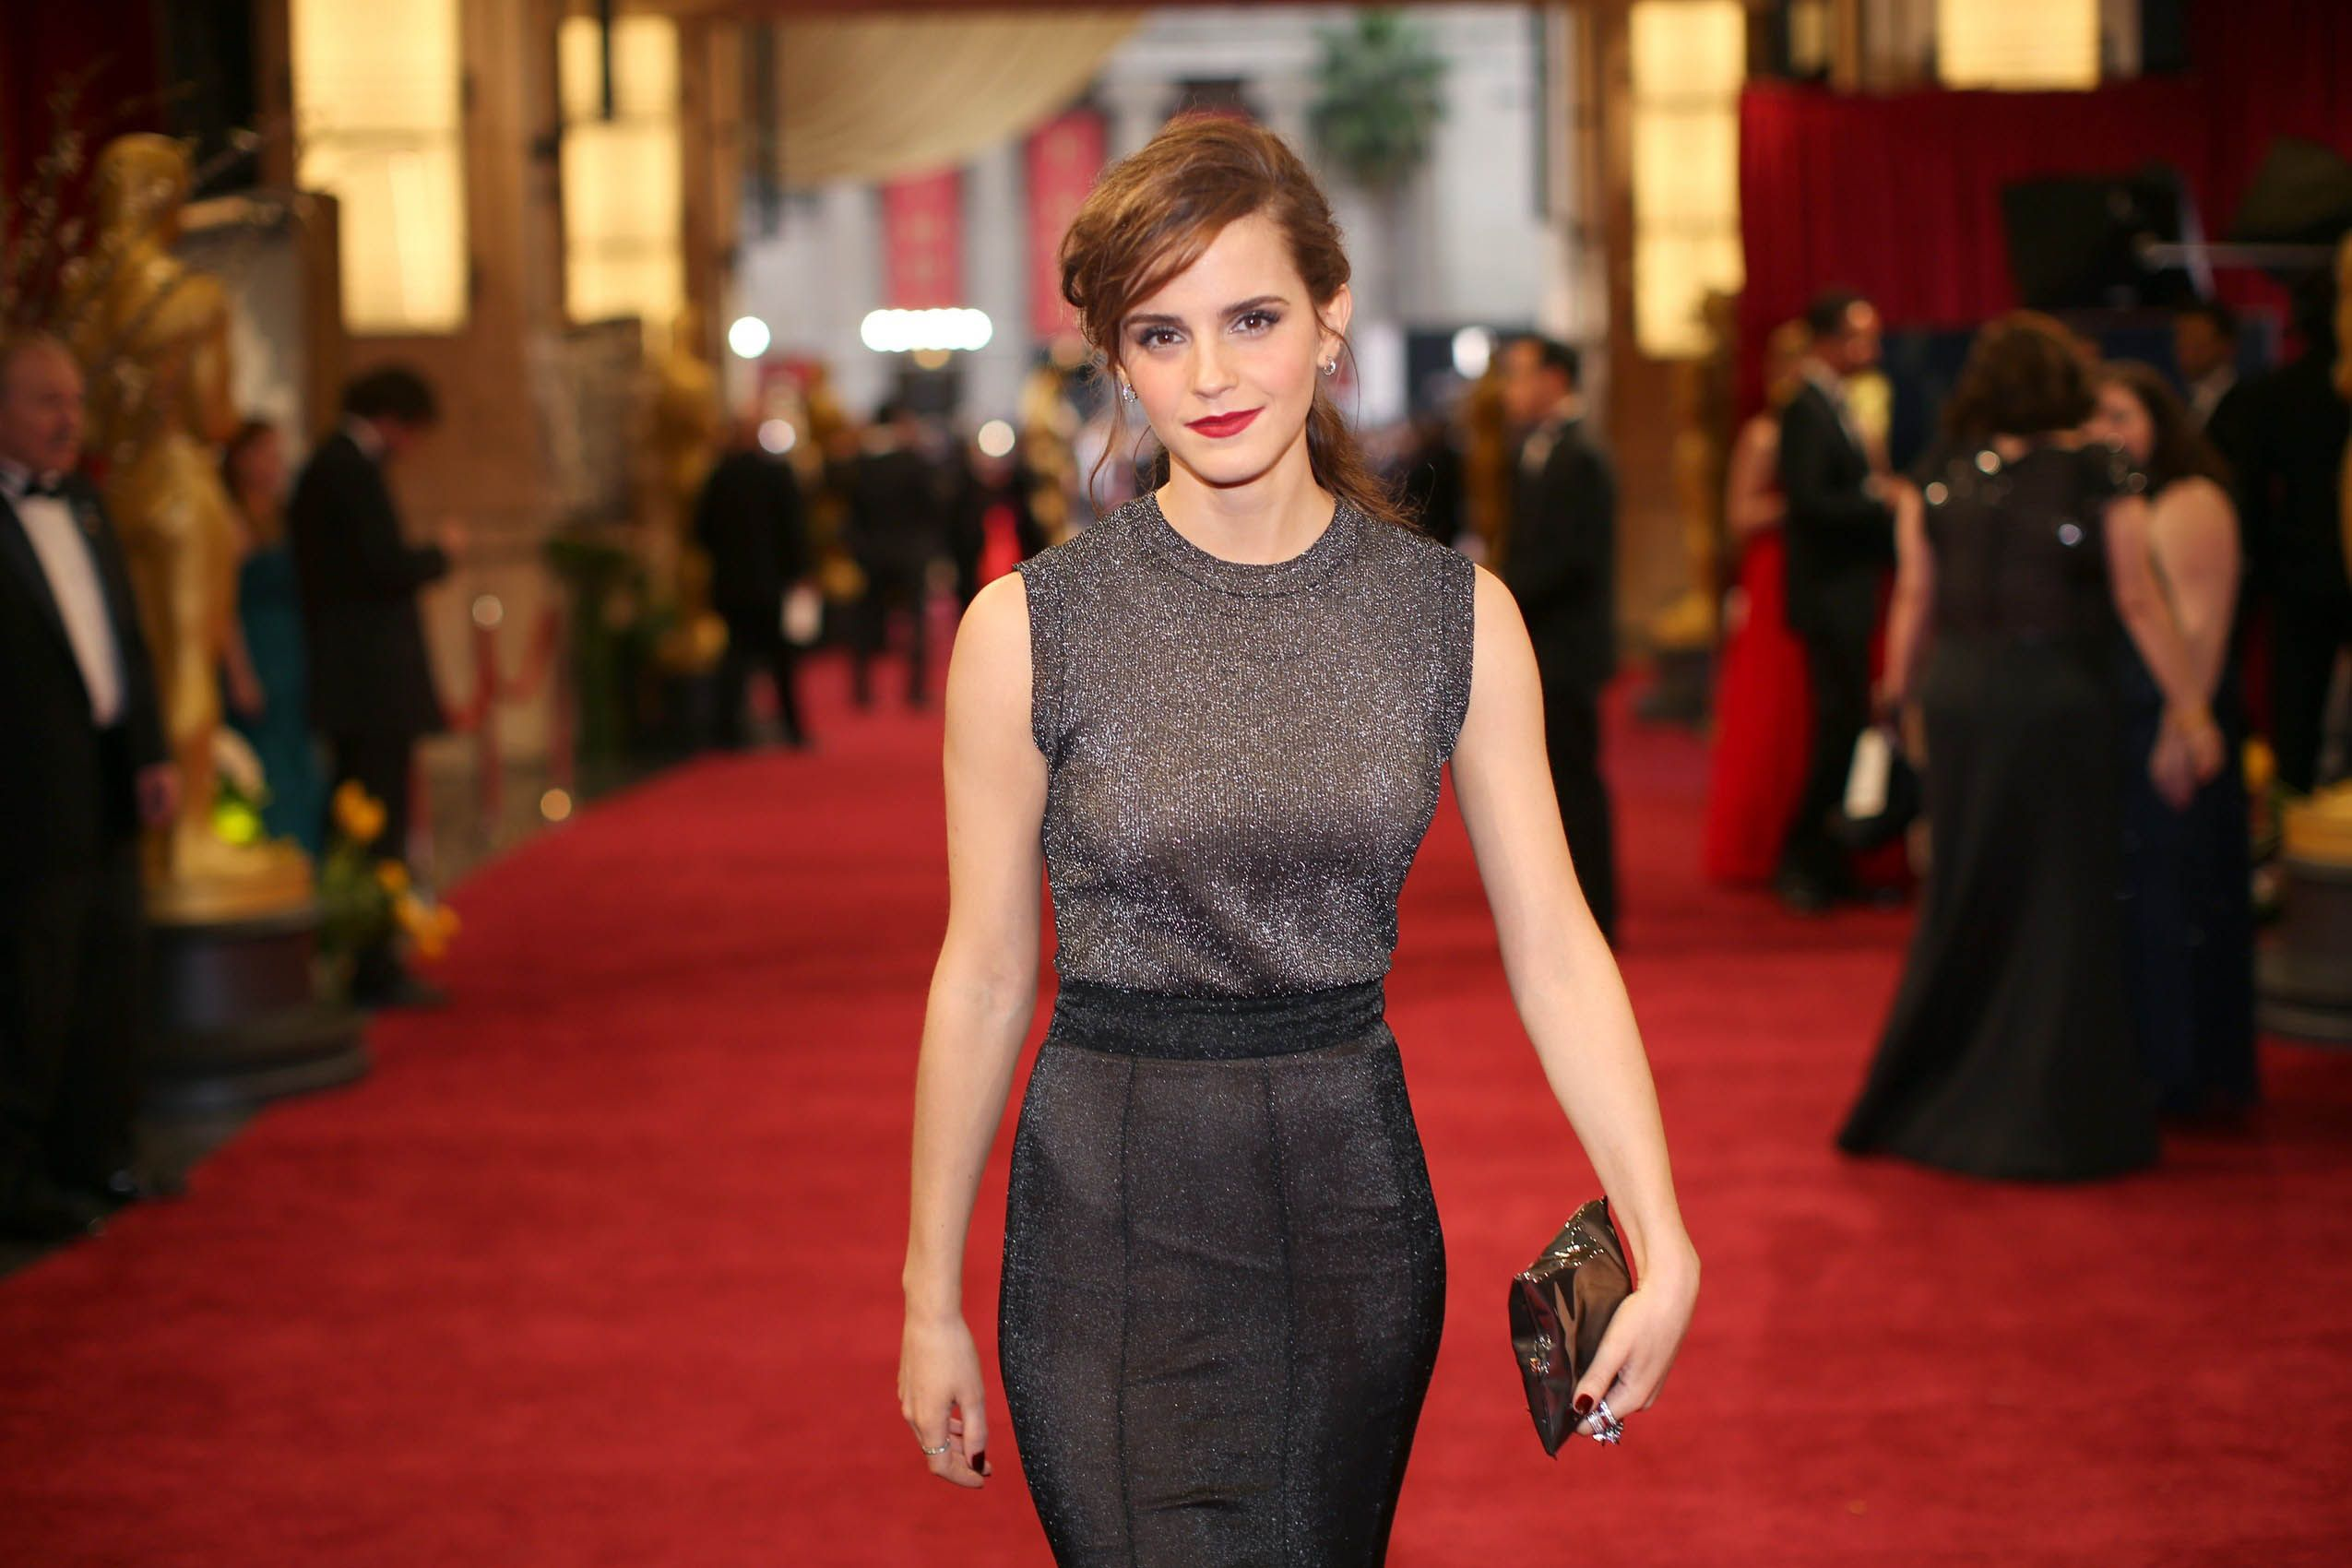 Attends the Oscars at Hollywood & Highland Center on March 2, 2014 in Hollywood, California